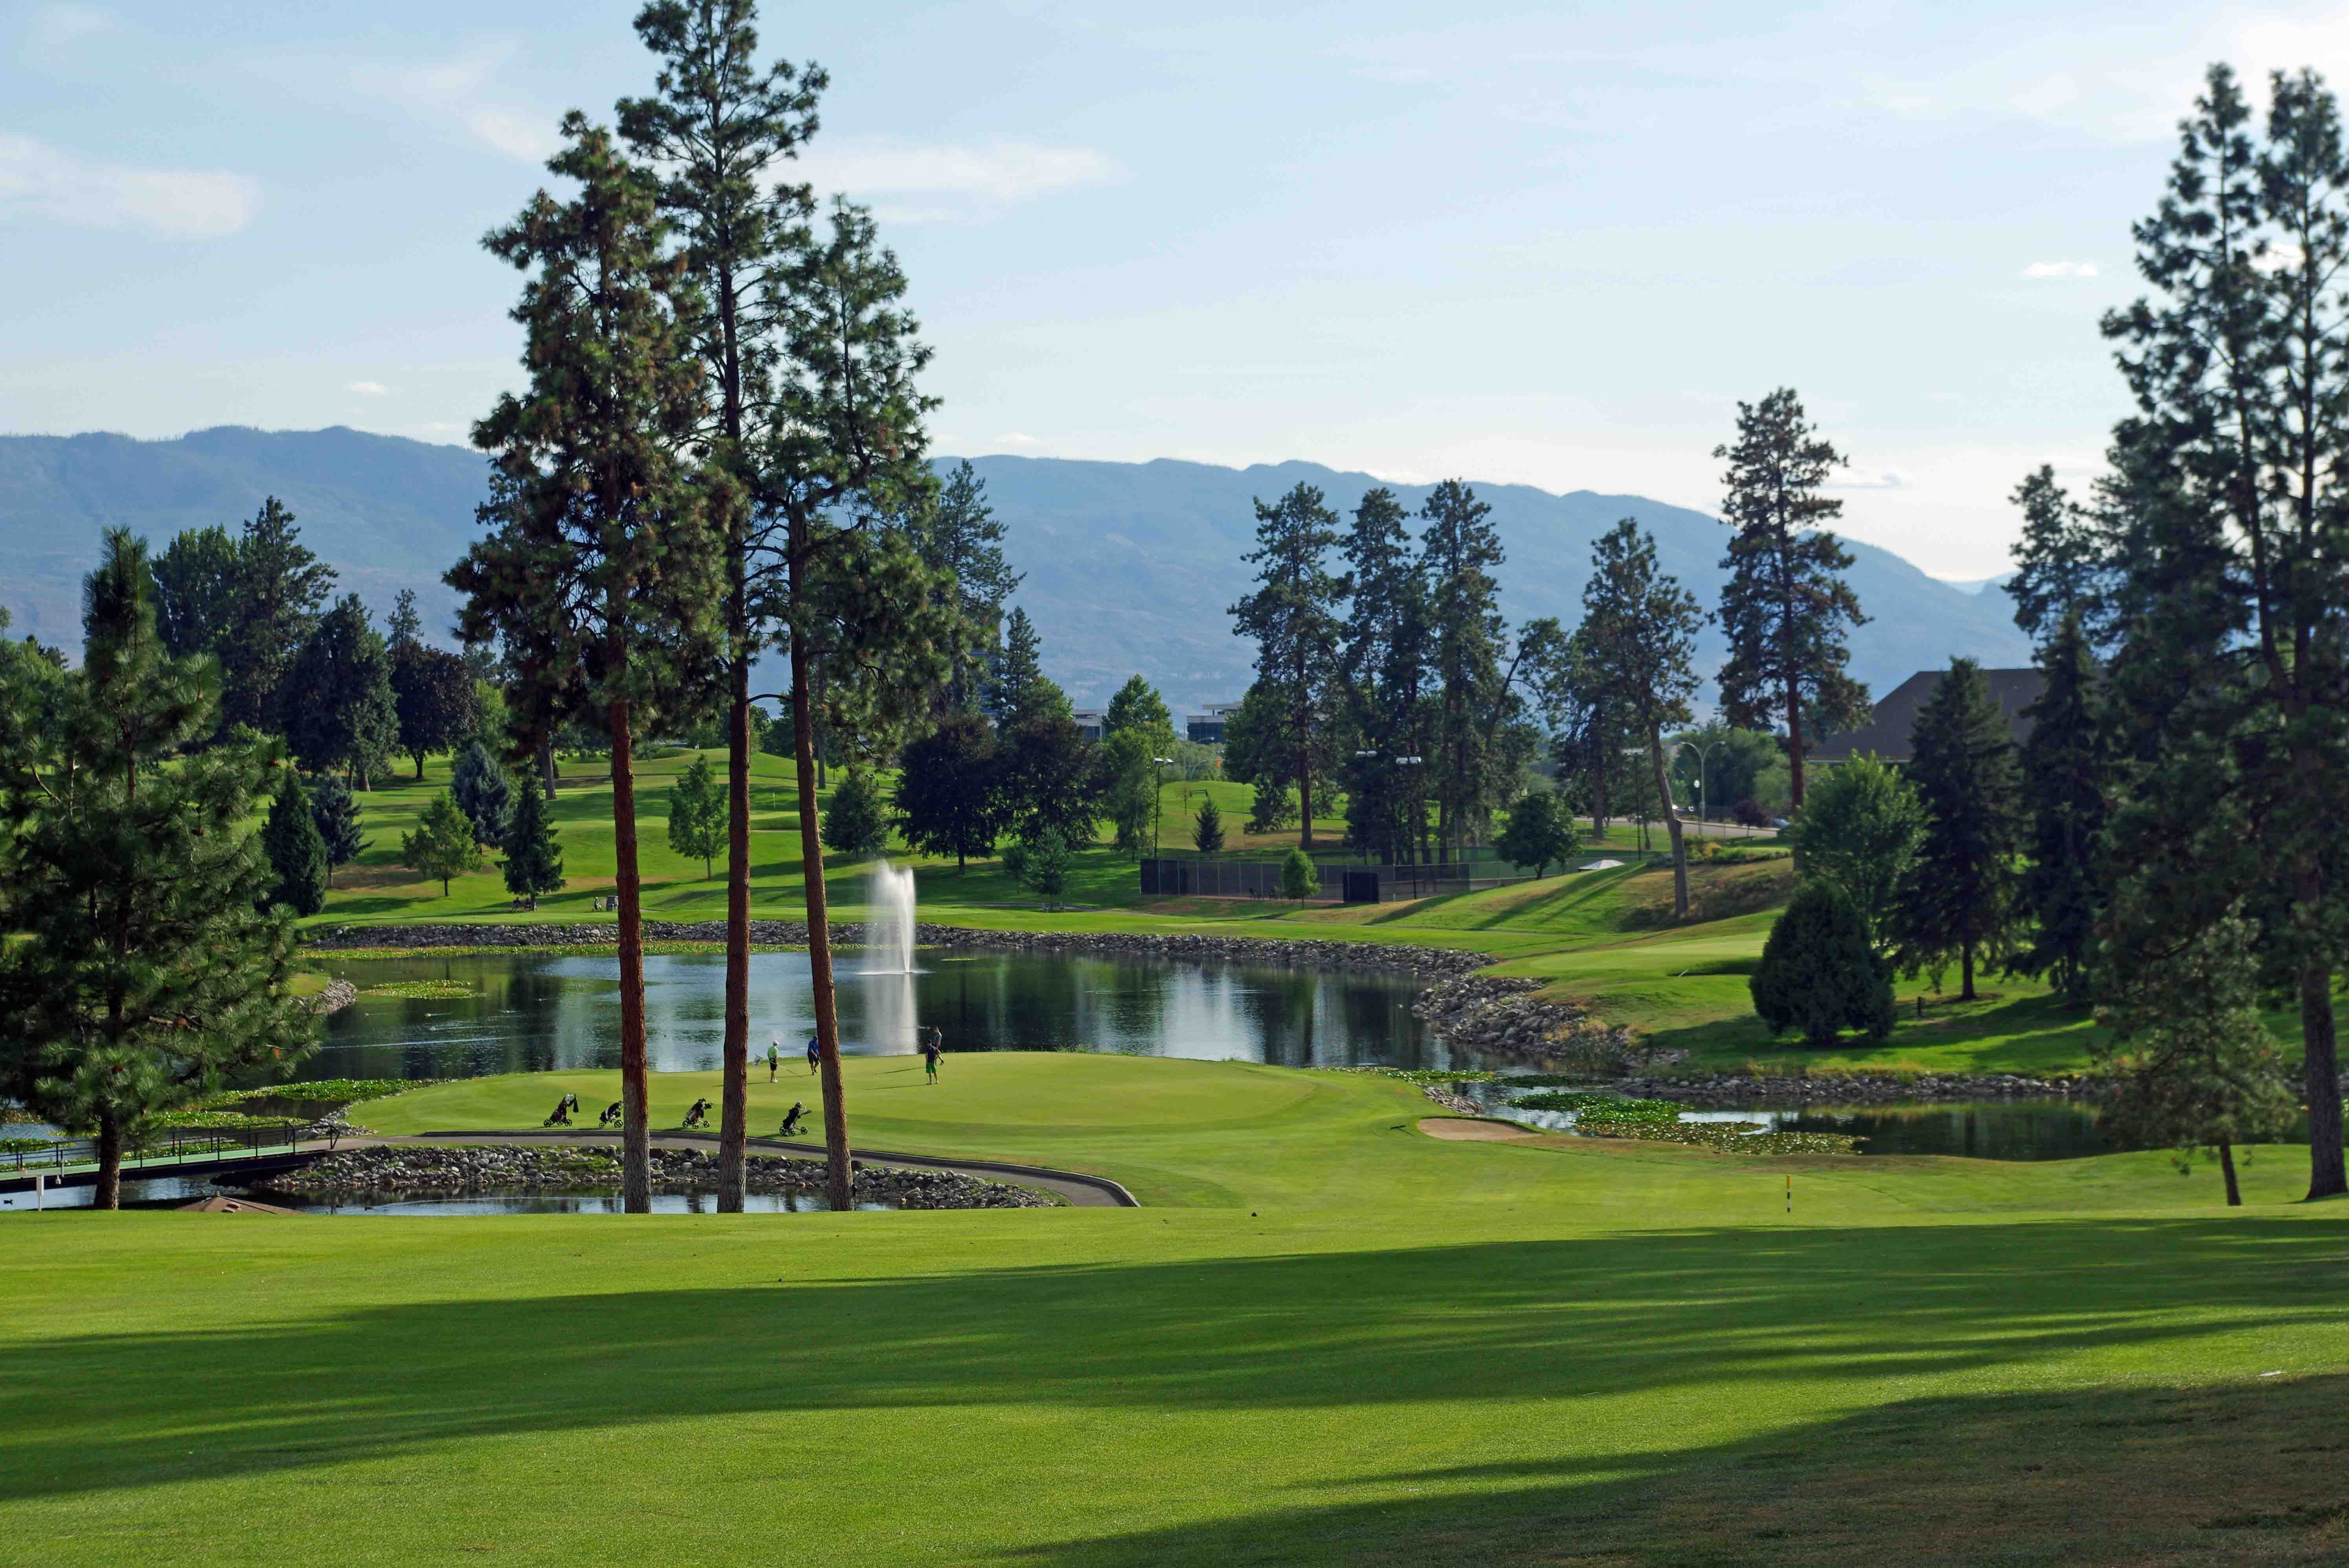 Kelowna Golf & Country Club in downtown Kelowna BC. This